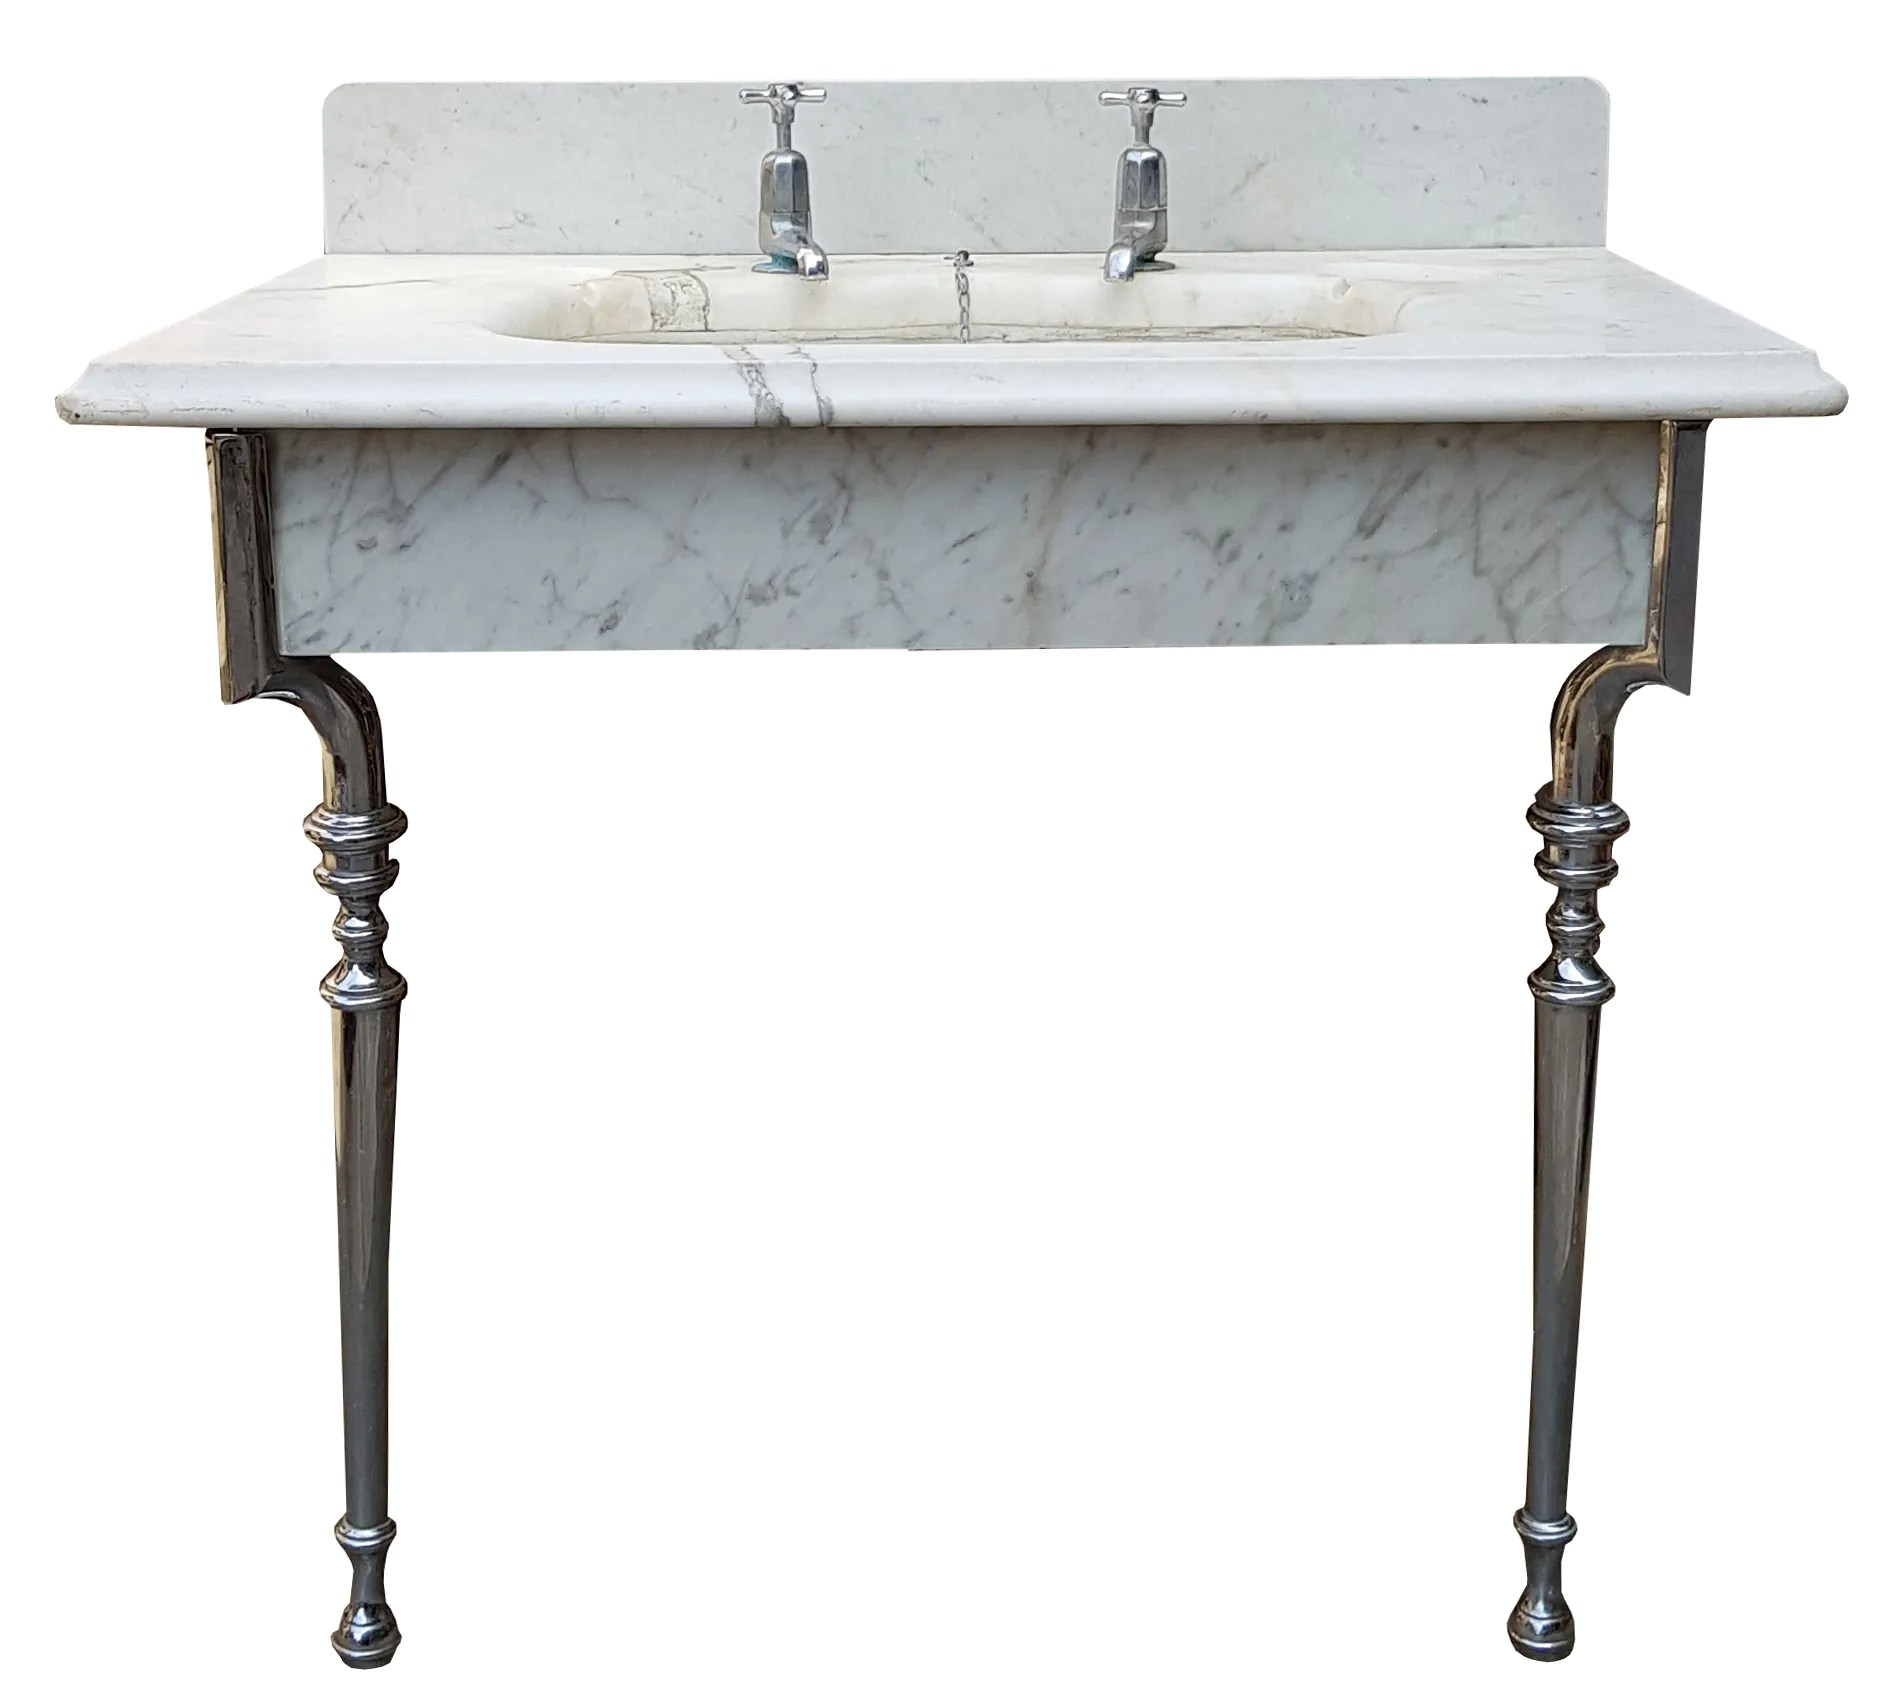 a reclaimed antique marble wash basin